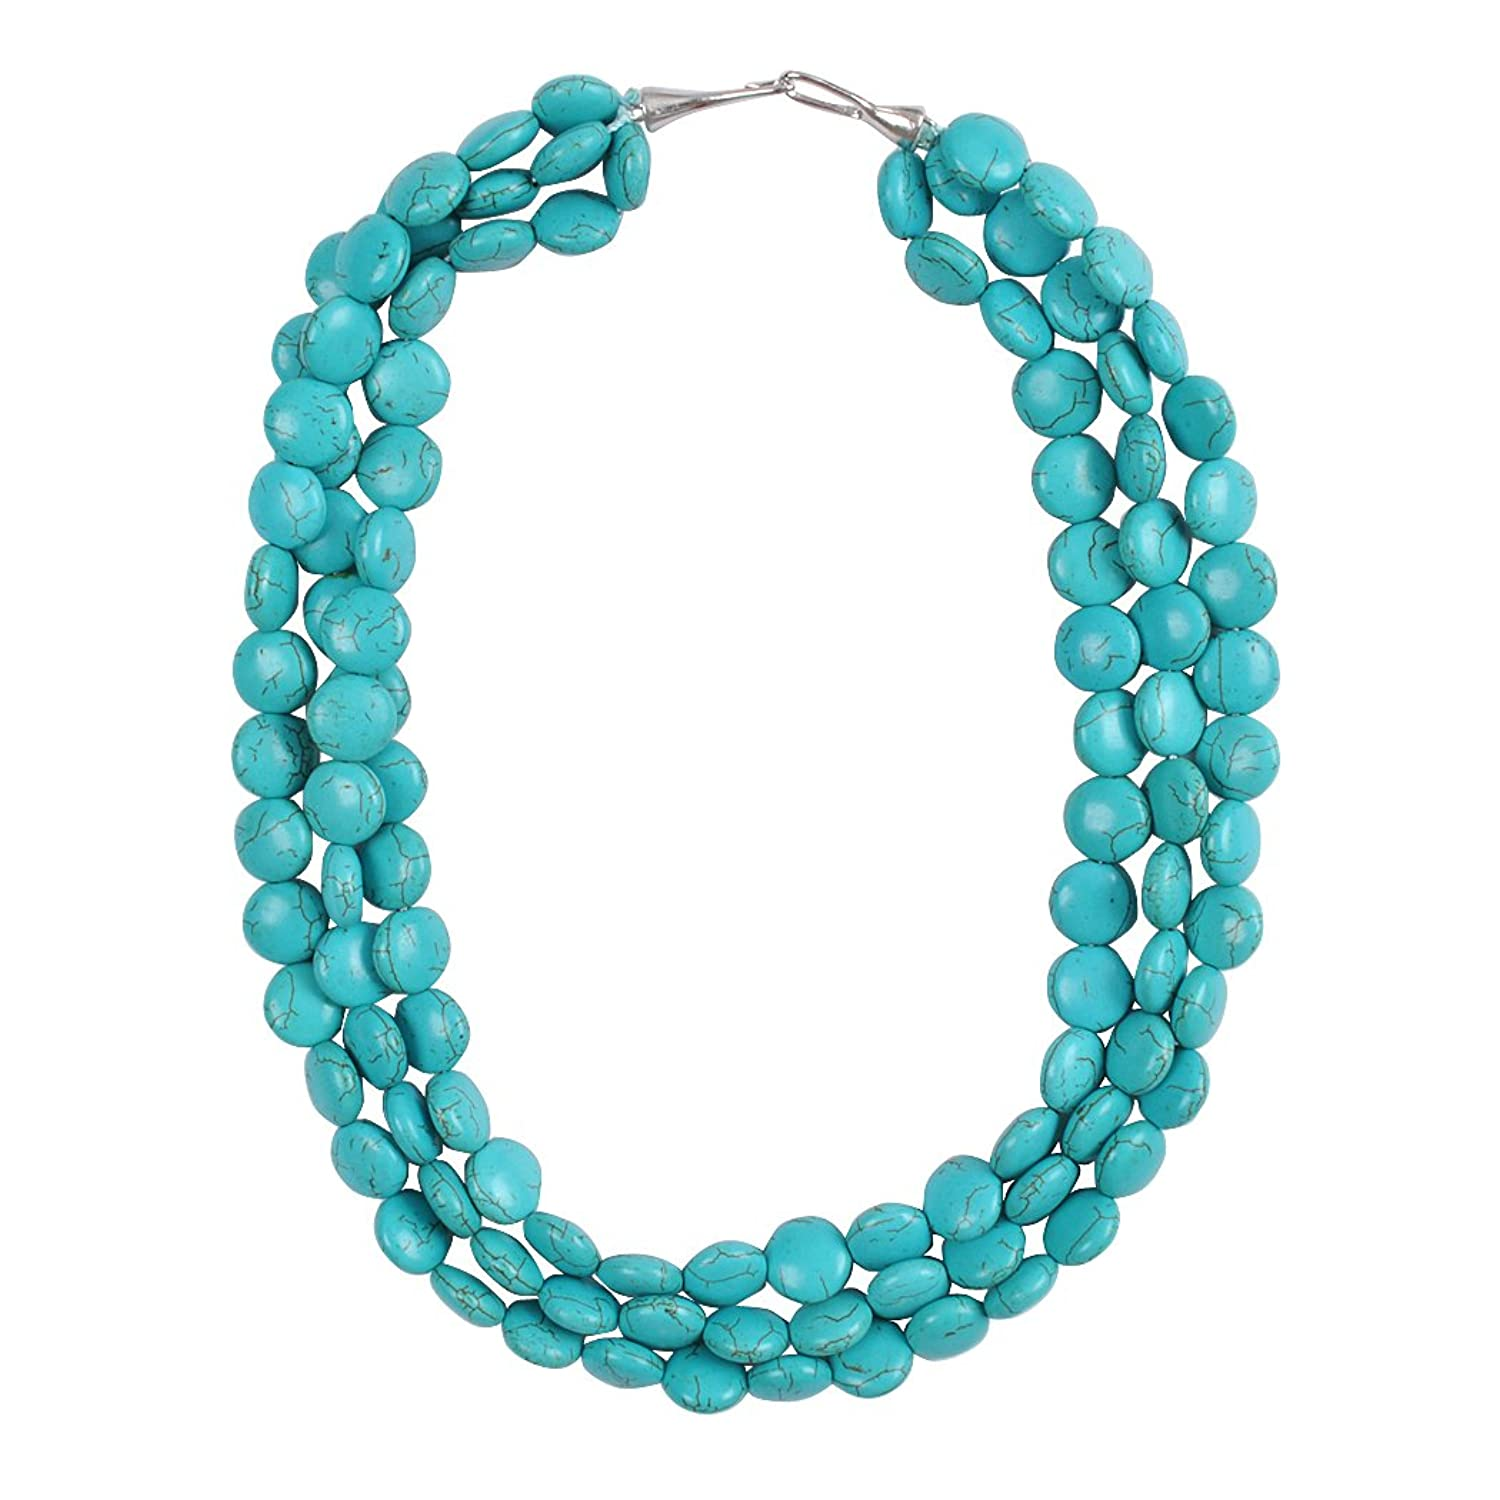 necklace turquoise amazon beads nacklace multi row evening statement round frontal com chunky dp stone fashion bib jane